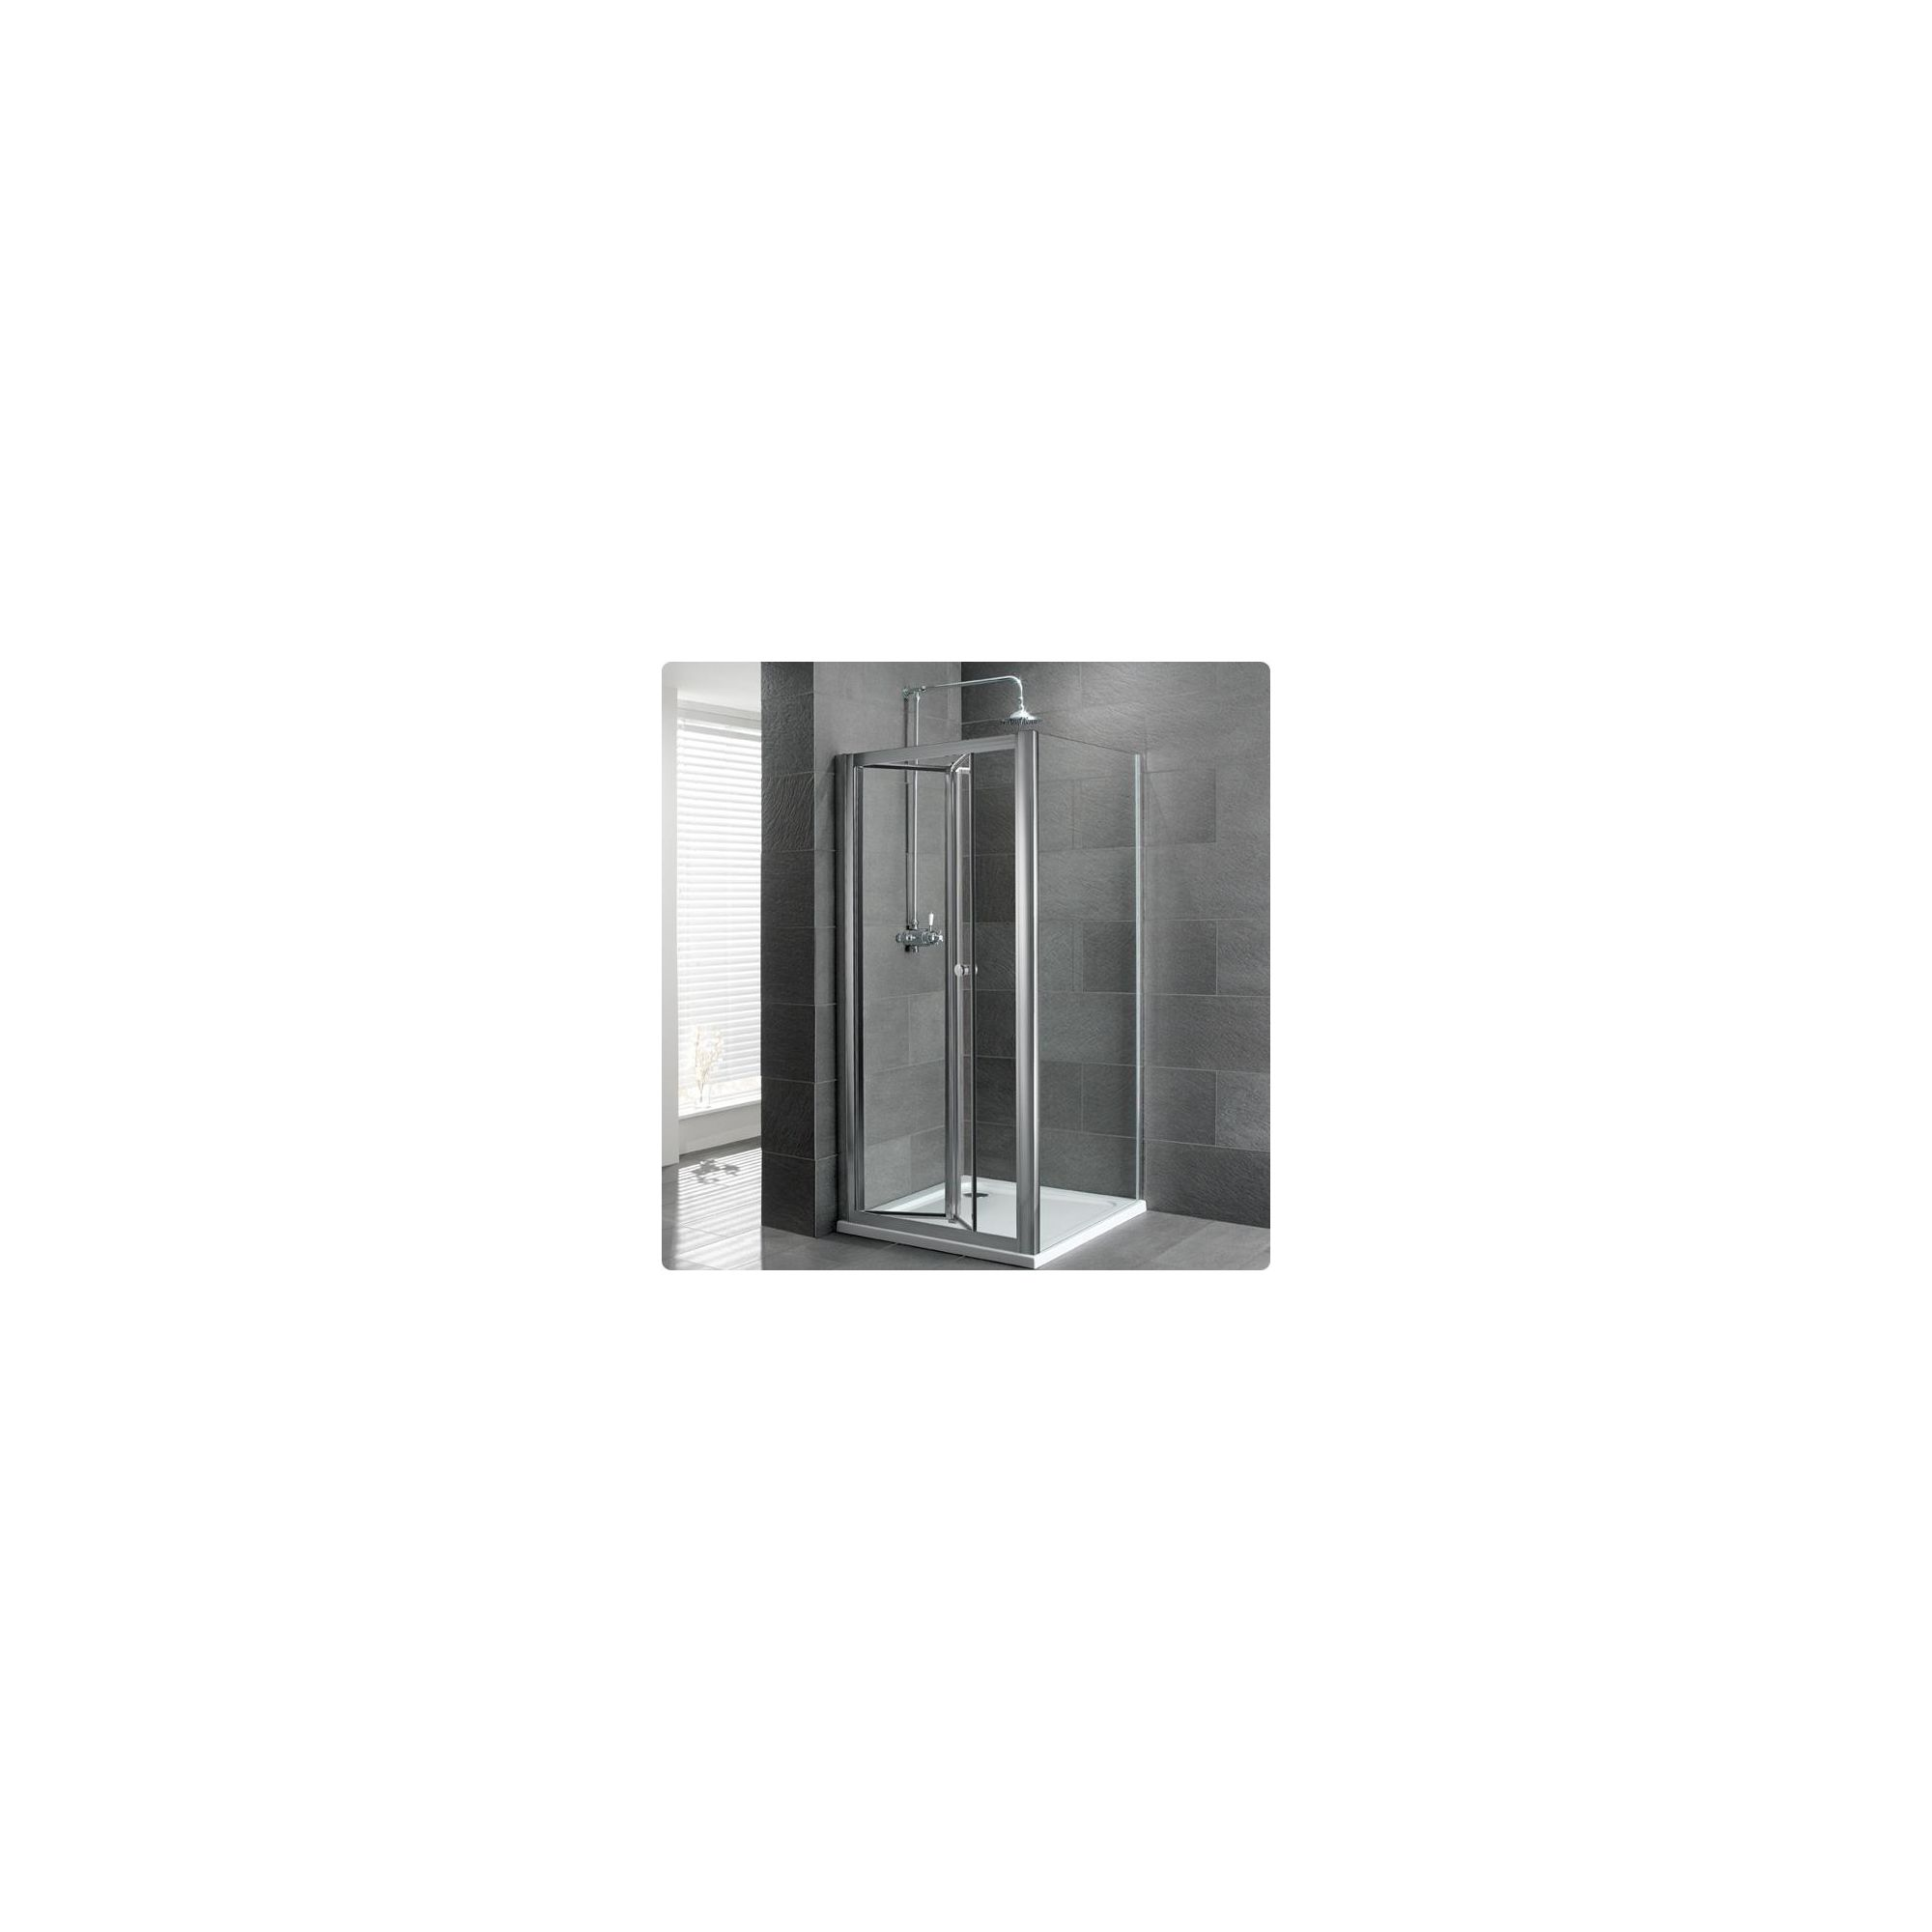 Duchy Select Silver Bi-Fold Door Shower Enclosure, 700mm x 700mm, Standard Tray, 6mm Glass at Tesco Direct